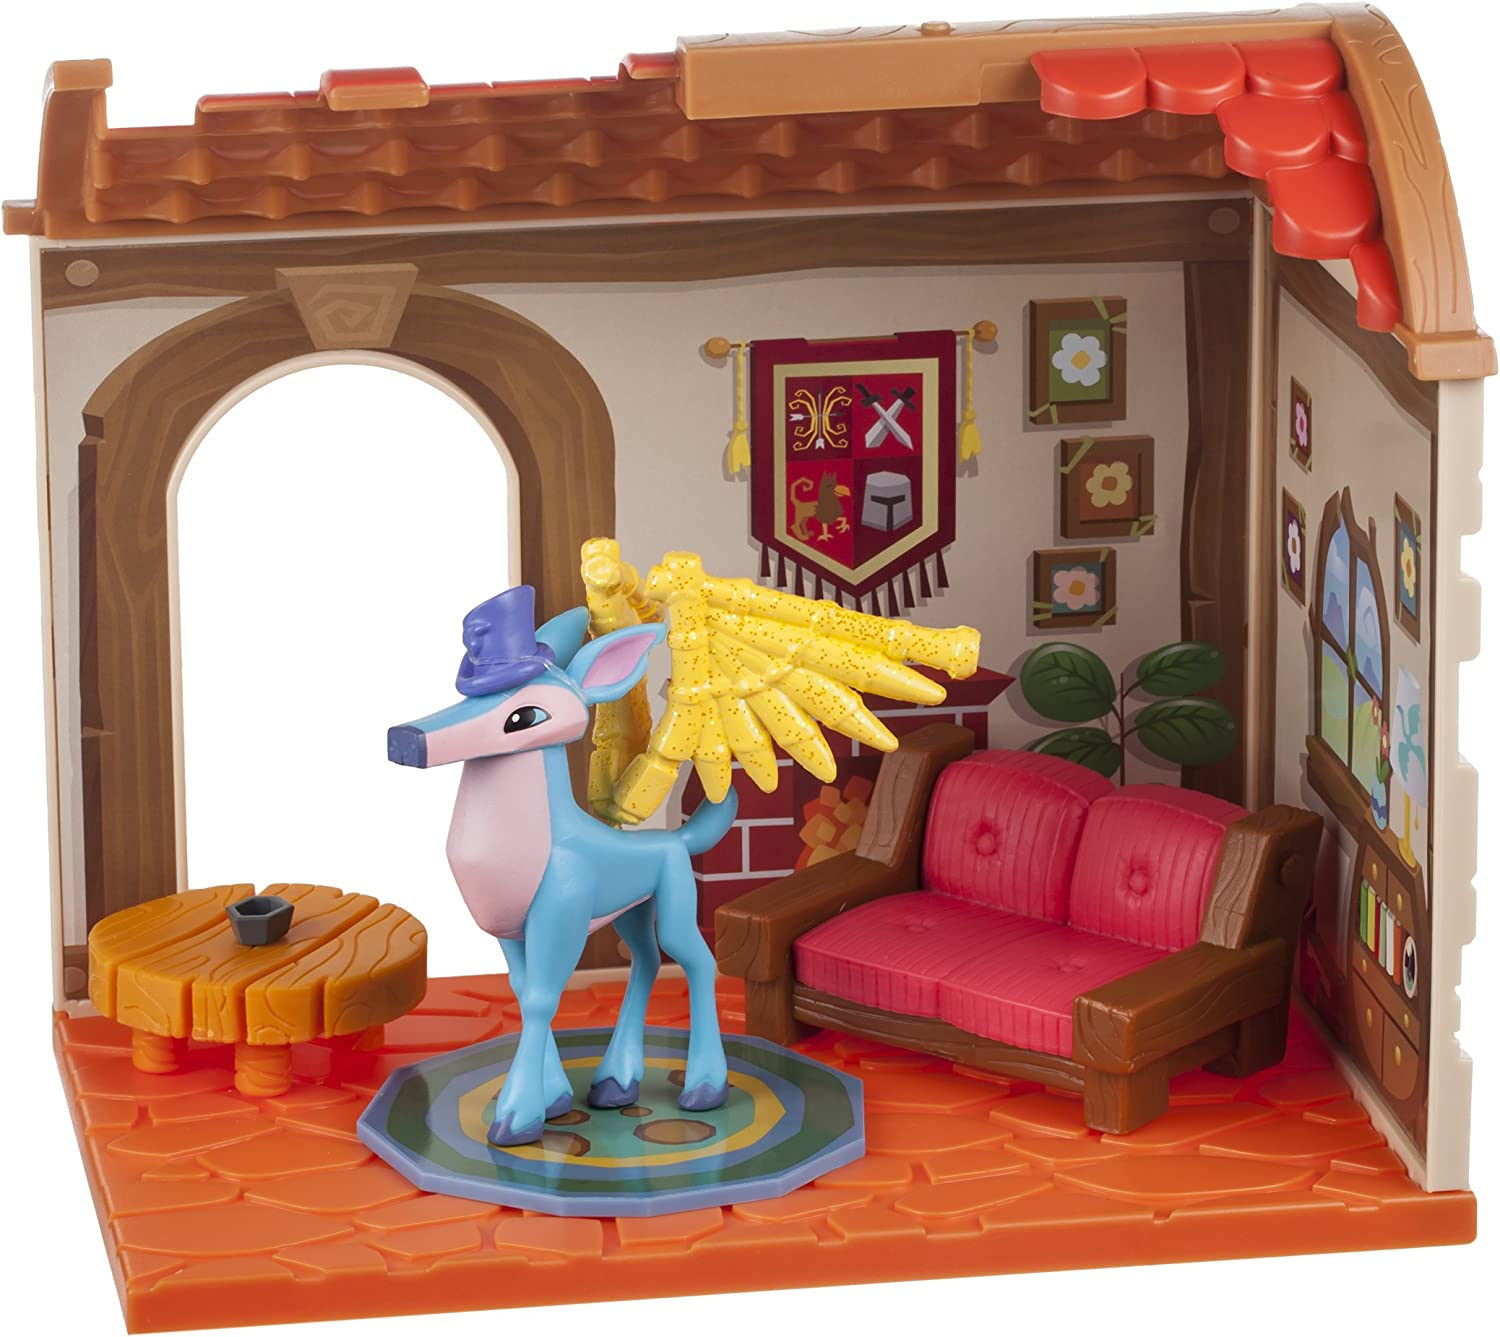 Good Animal Jam Christmas Houses Easy Small Den 2020 Play Wild Amazon.com: Animal Jam Small House Den with Limited Edition Winged